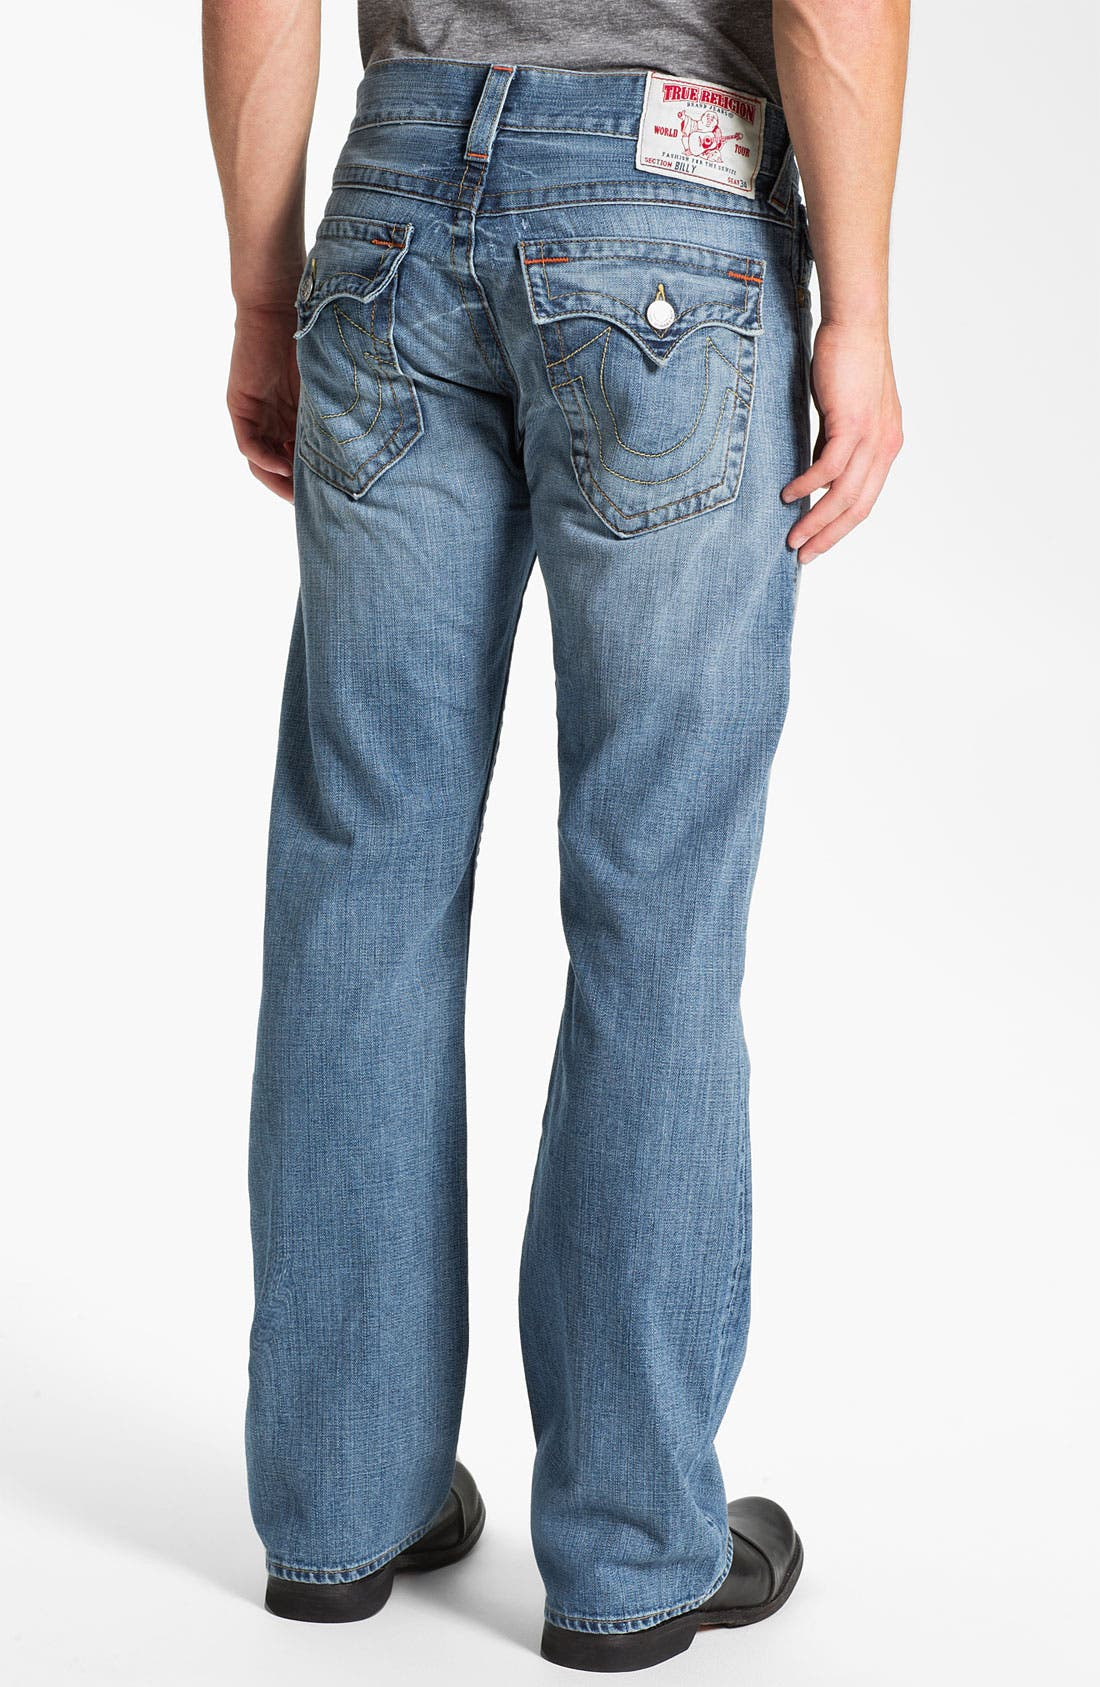 Alternate Image 1 Selected - True Religion Brand Jeans 'Billy' Bootcut Jeans (Vam Shade Horizon)